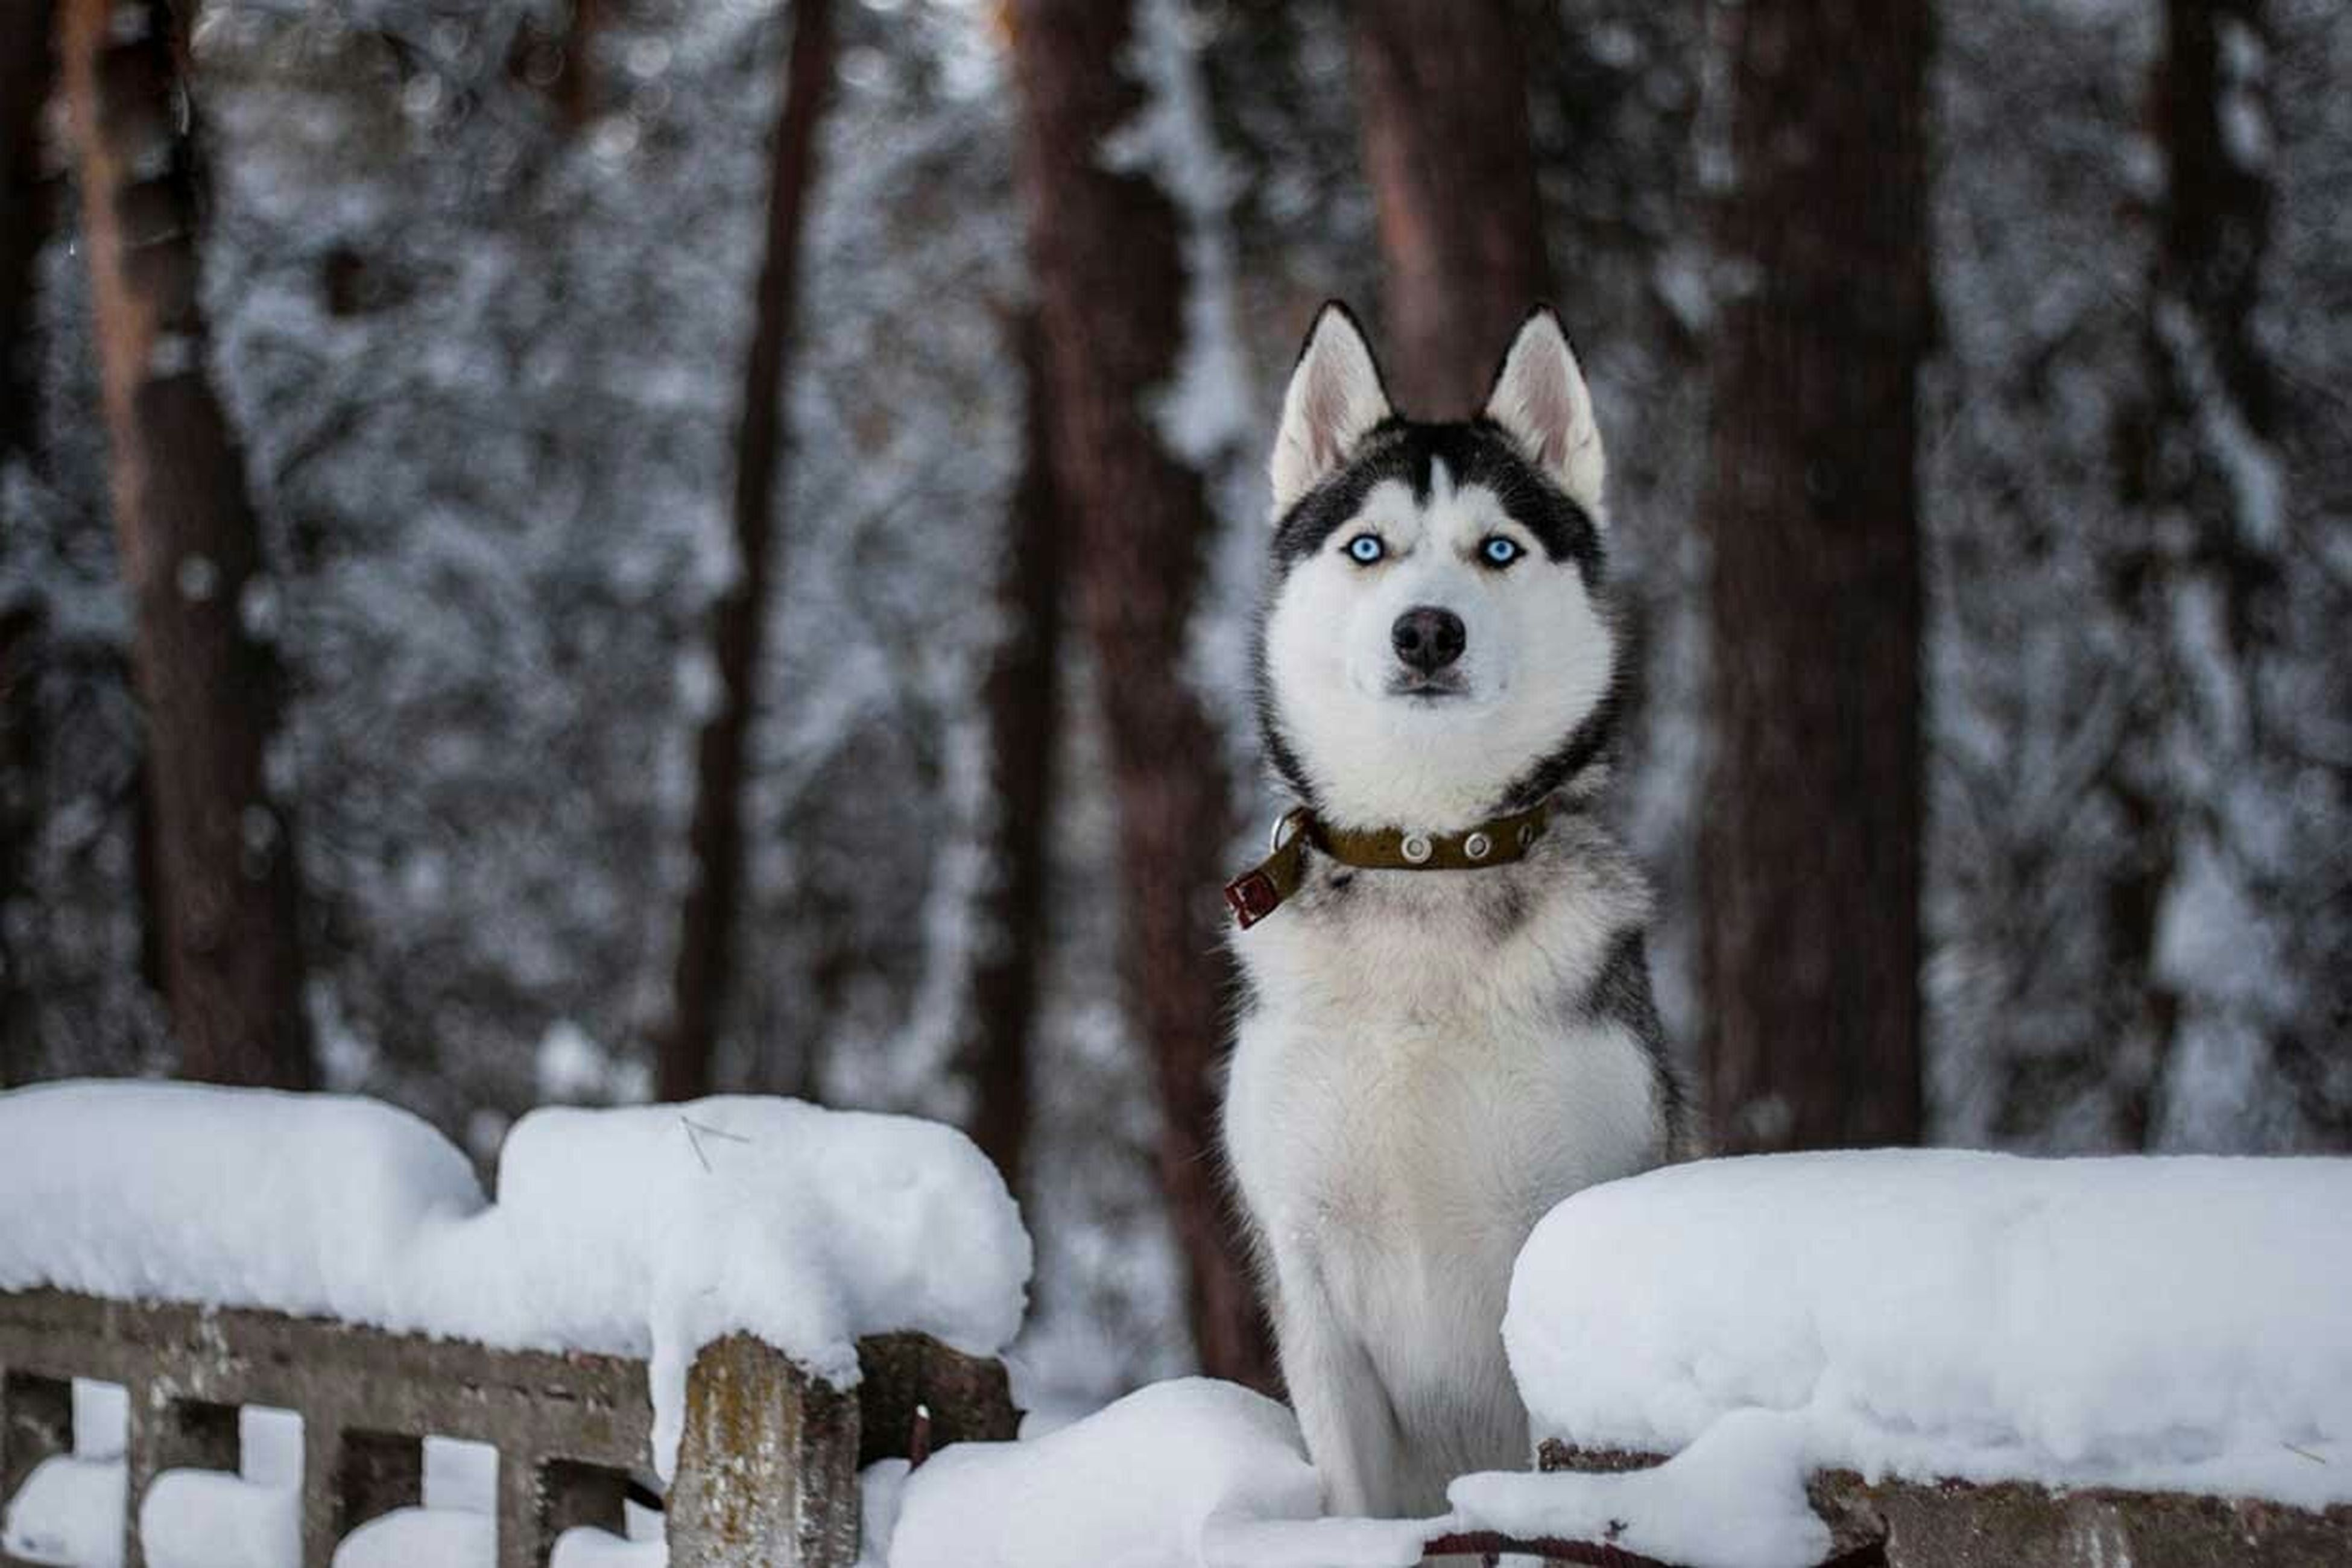 animal themes, snow, winter, cold temperature, one animal, white color, portrait, mammal, looking at camera, focus on foreground, tree, domestic animals, sitting, pets, tree trunk, front view, outdoors, season, white, day